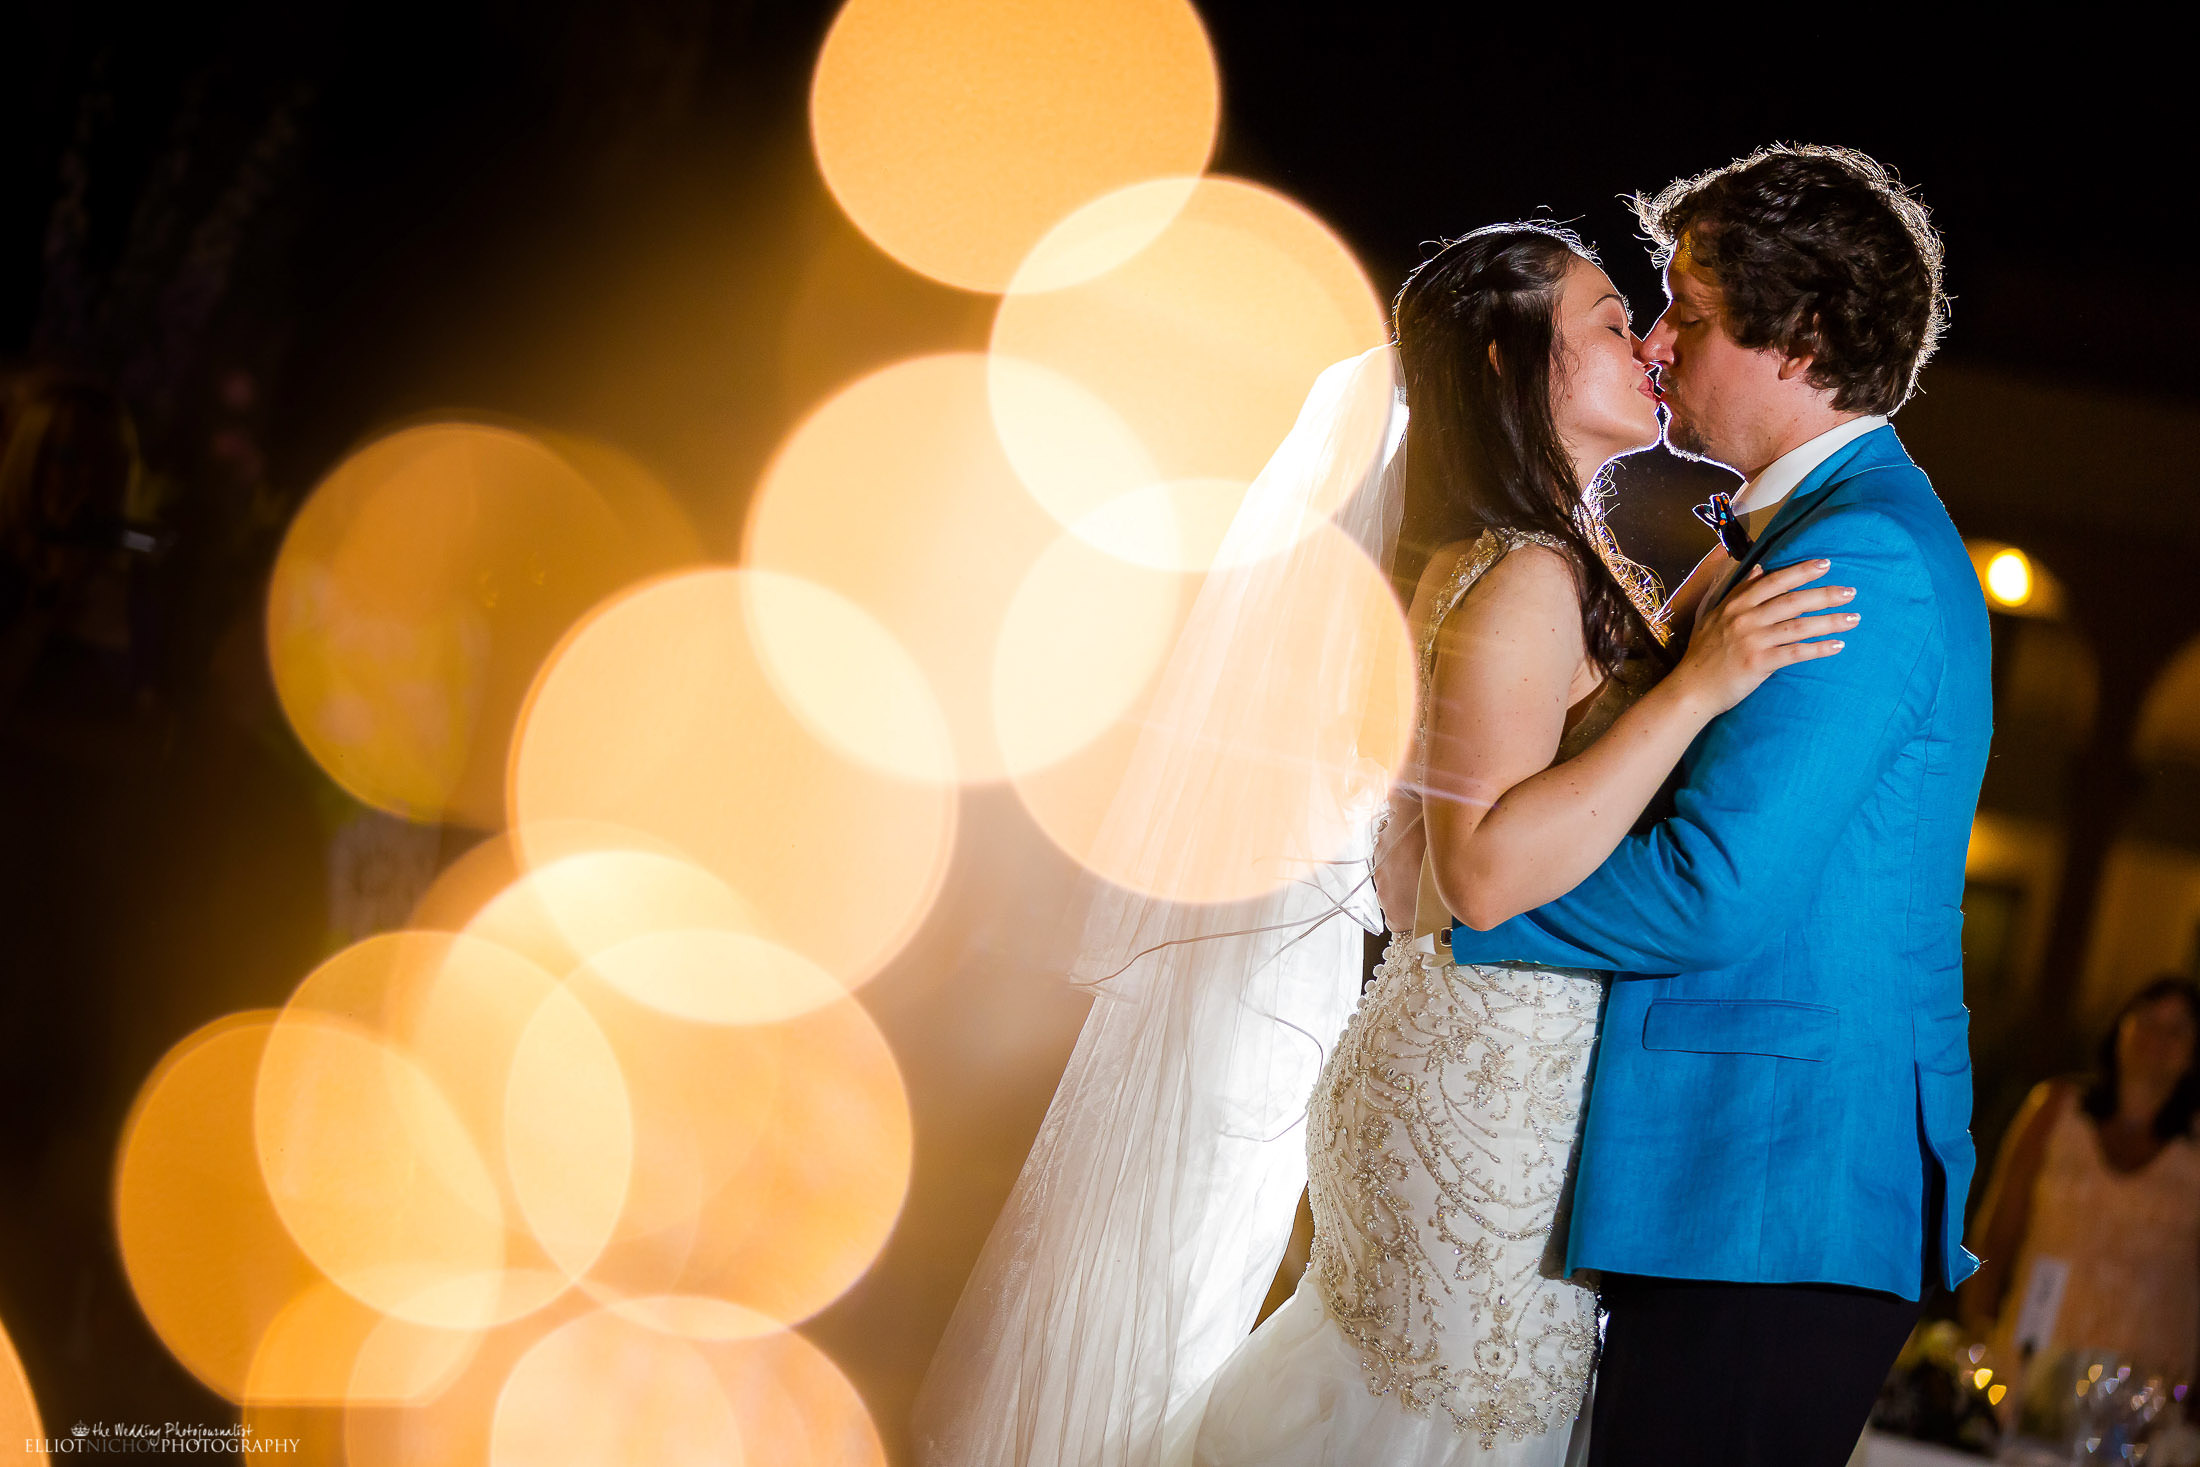 Bride and groom - the kiss. Photo by Elliot Nichol Photography.